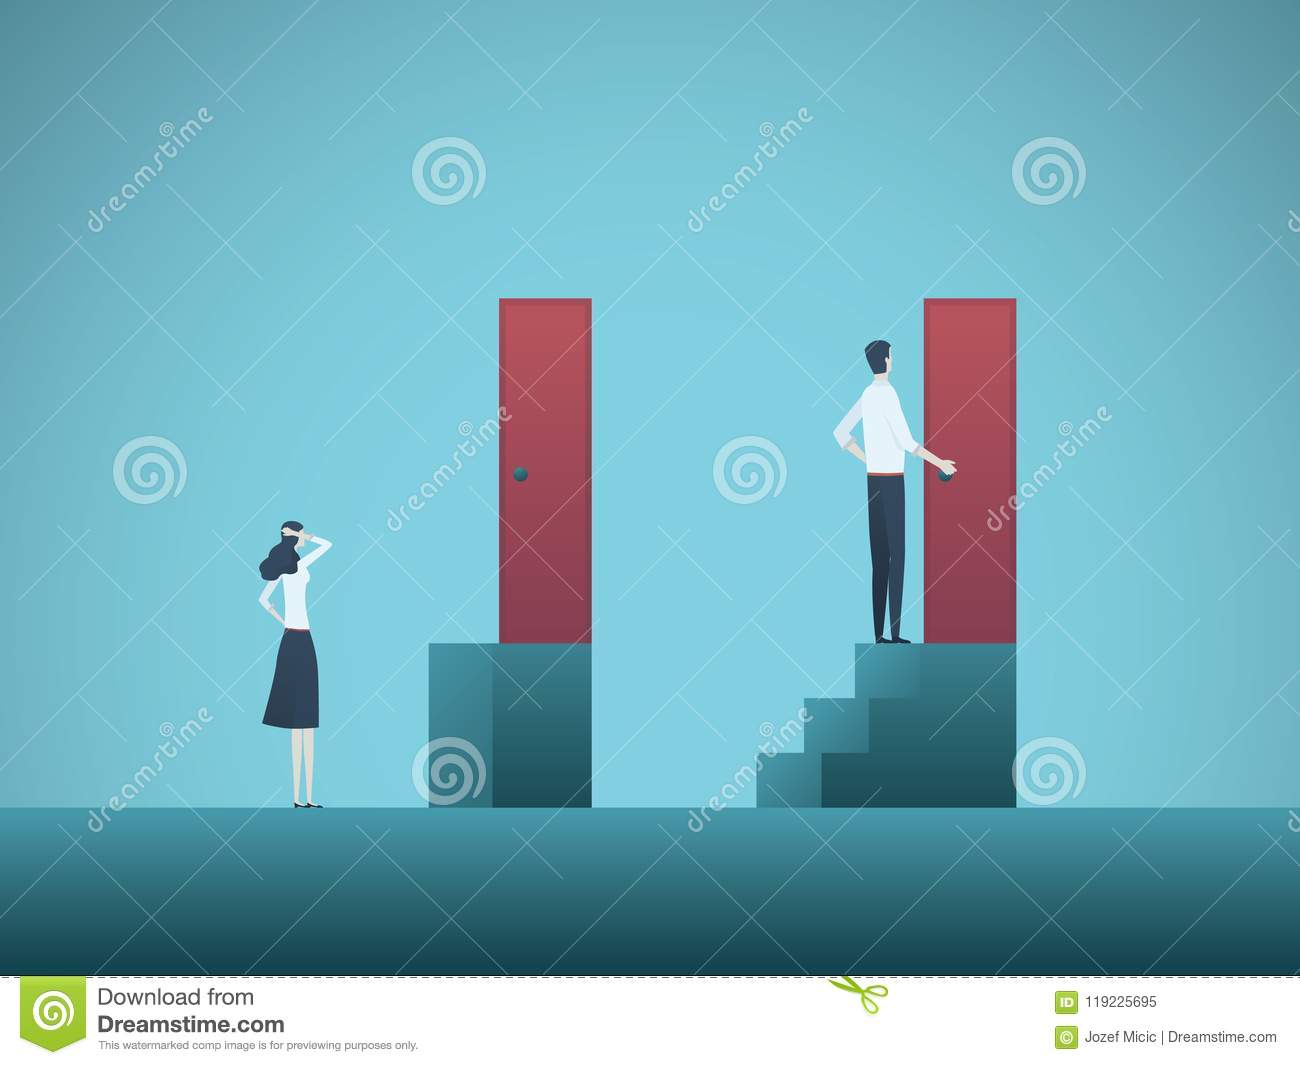 Business gender gap inequality vector concept. Symbol of discrimination in career, salary gap, corporate injustice and